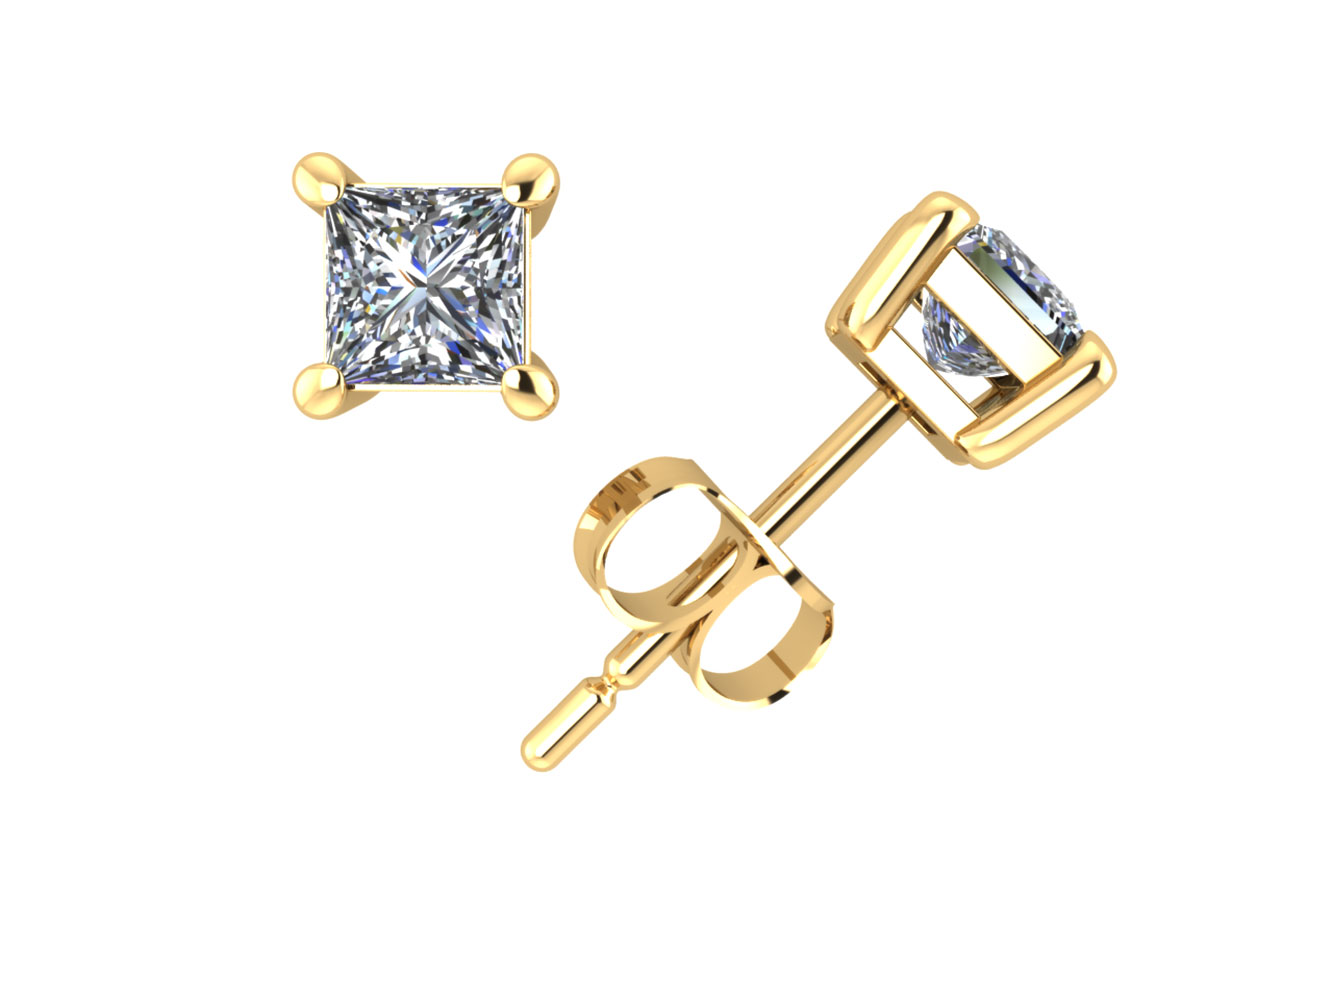 Real 0.33Ct Round Diamond Stud Earrings 14k Yellow Gold 4Prong GH I1 ScrewBack